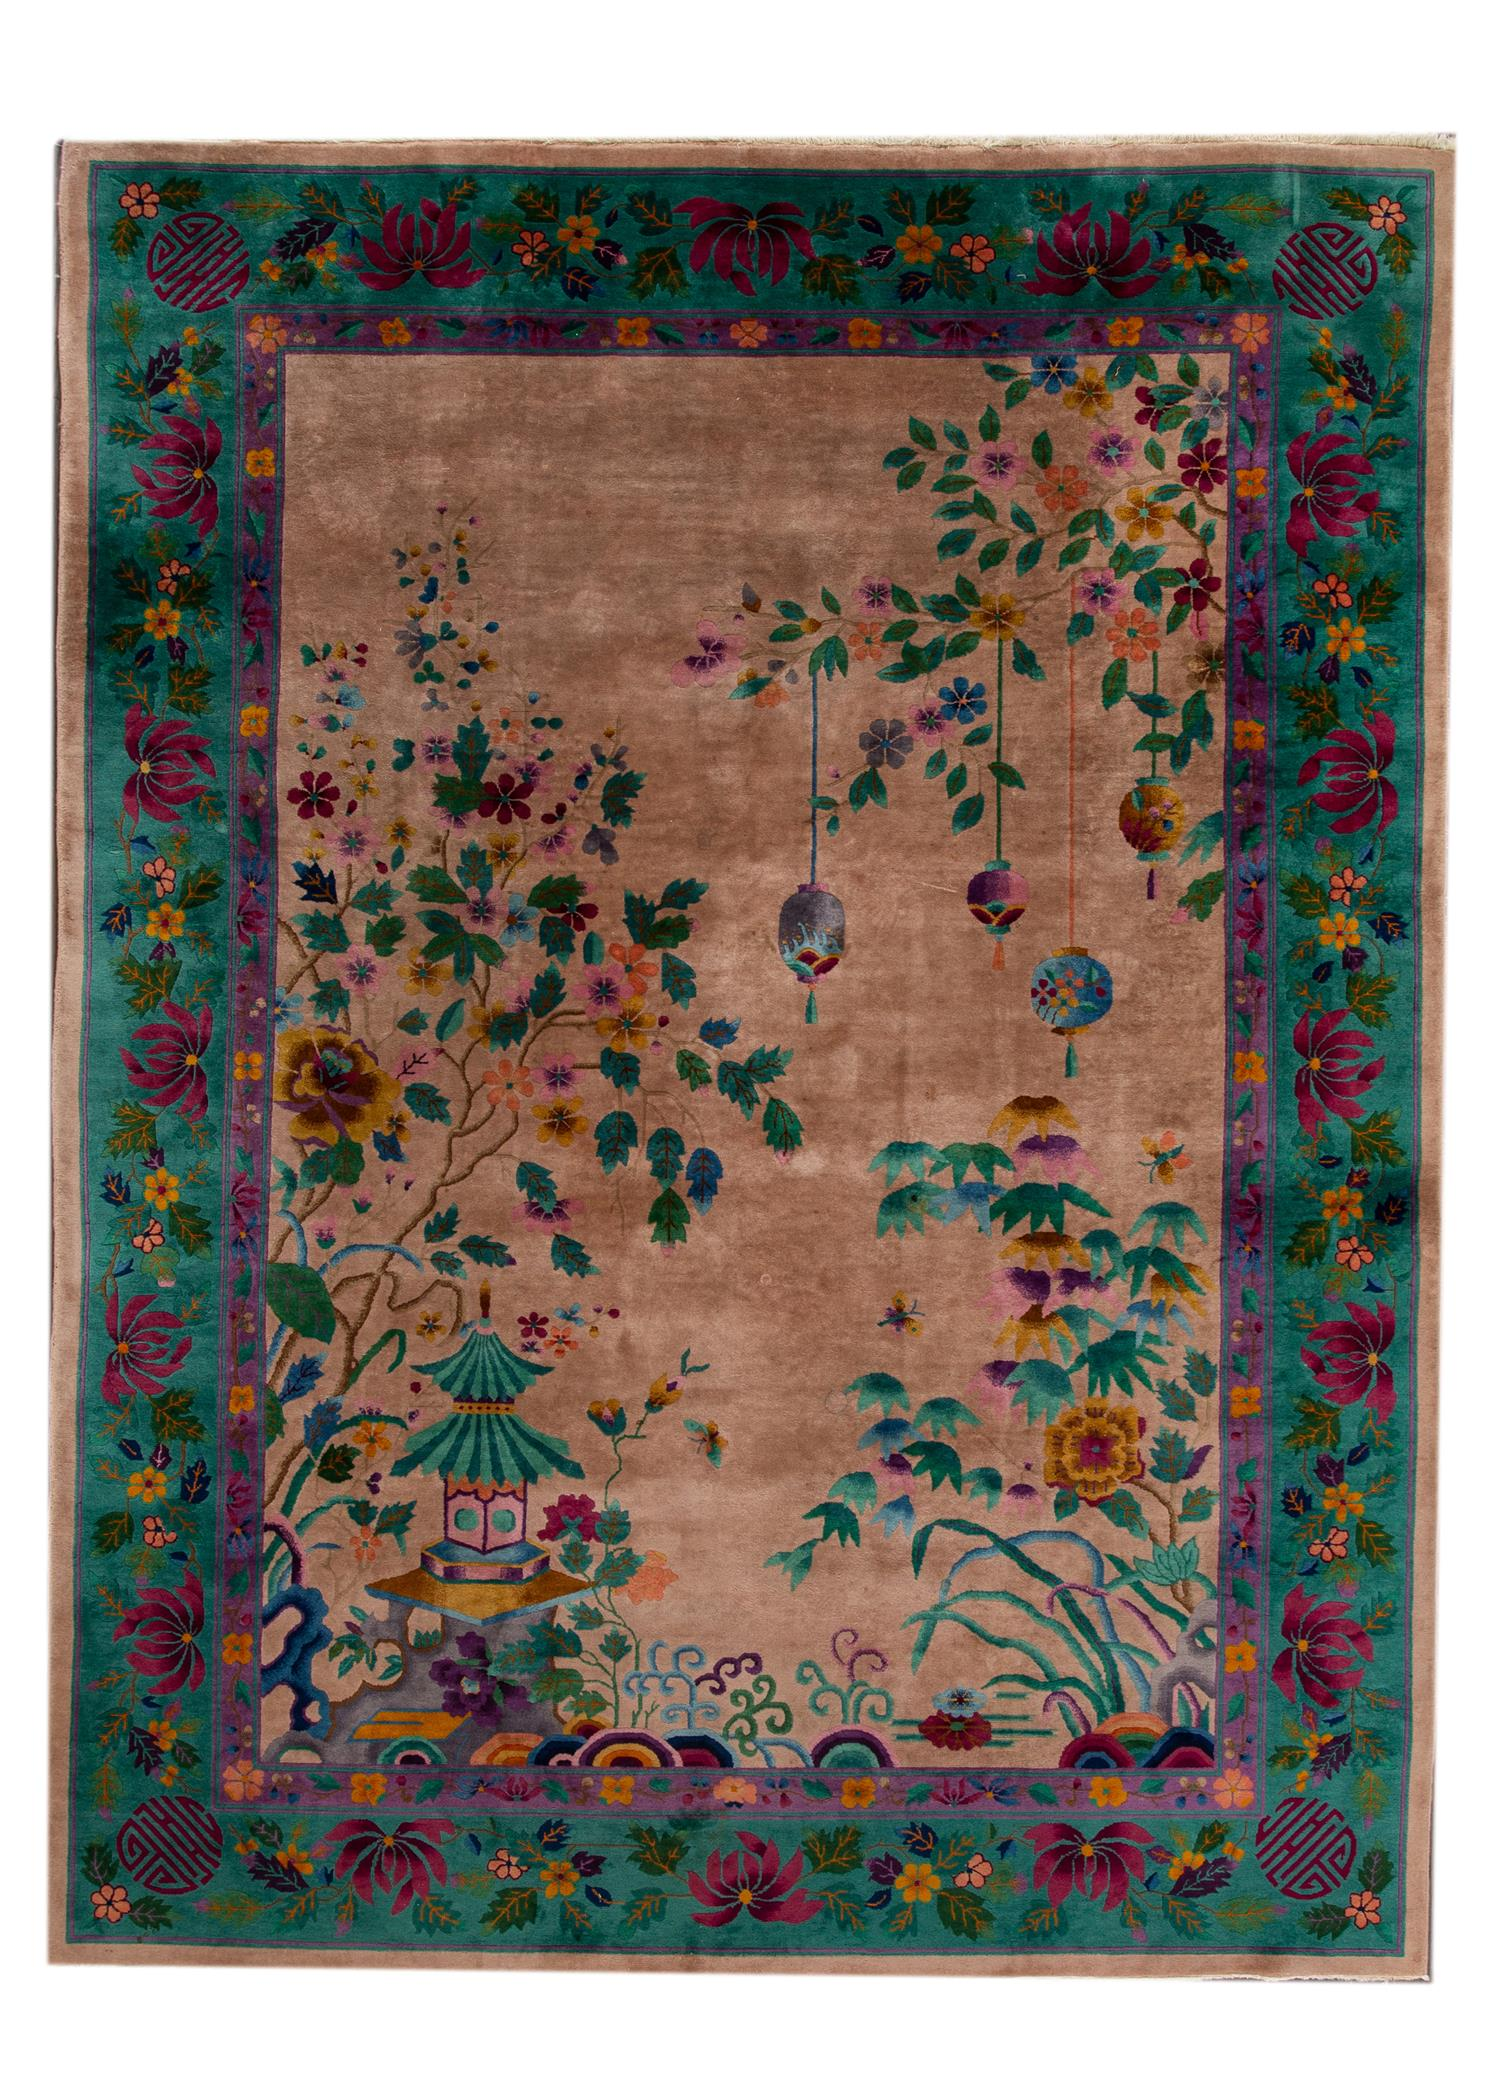 Antique Chinese Deco Rug, 9X12